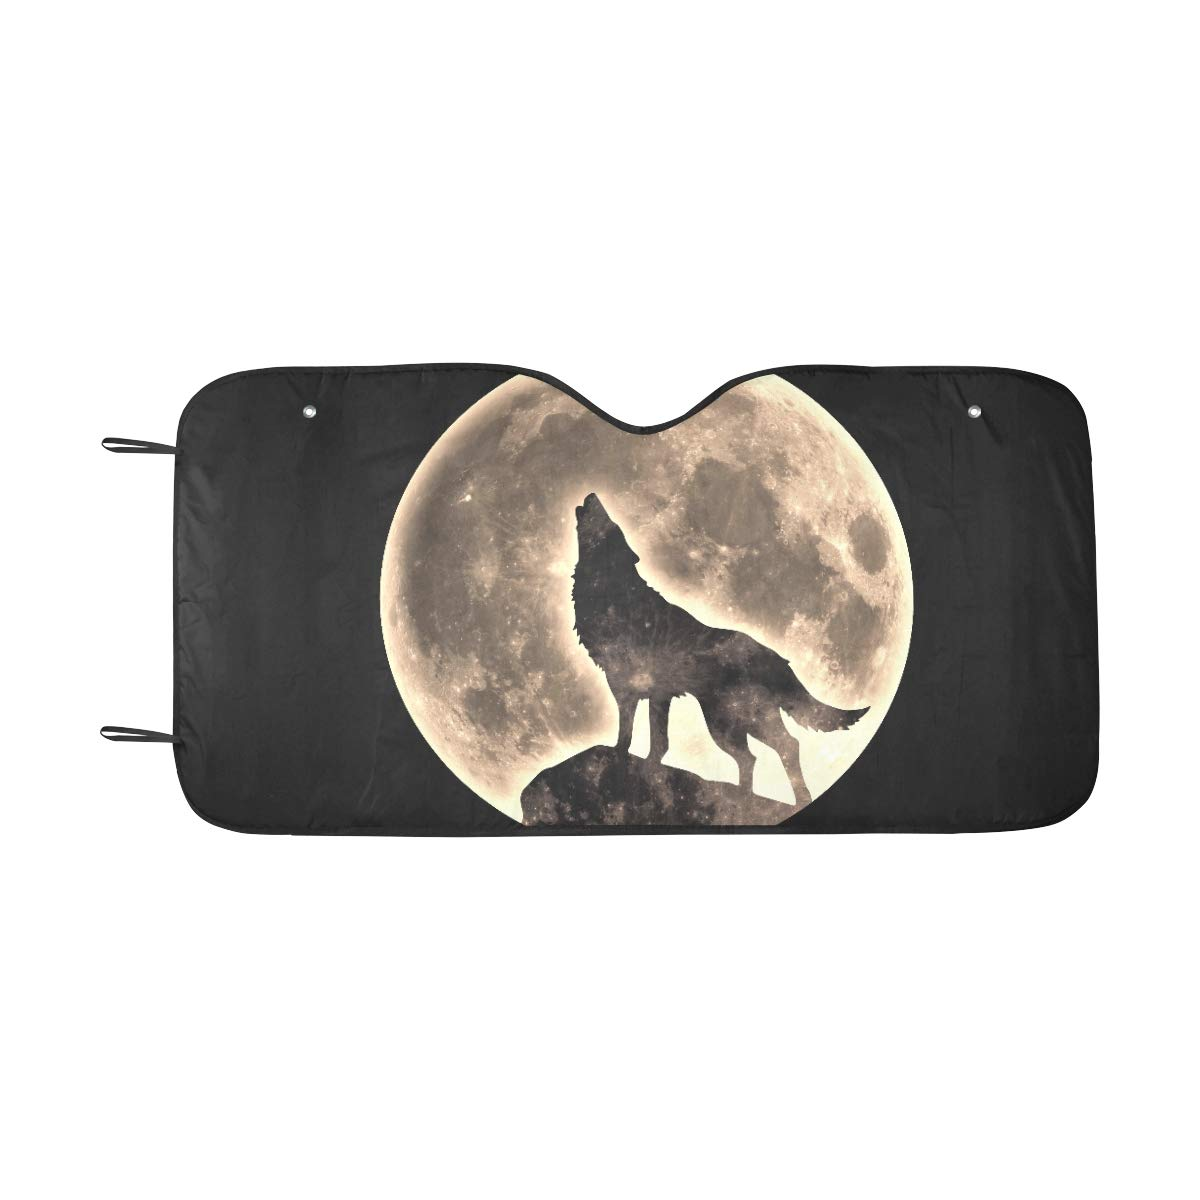 Plosds Car Sun Shade Windshield Foldable Wild Howling Scared Moon Night Wolf Sun Visor Universal Fit Keep Car Vehicle Cool Heat Reflector Sedans Suv Truck 55x30 Covers For Car Windshield